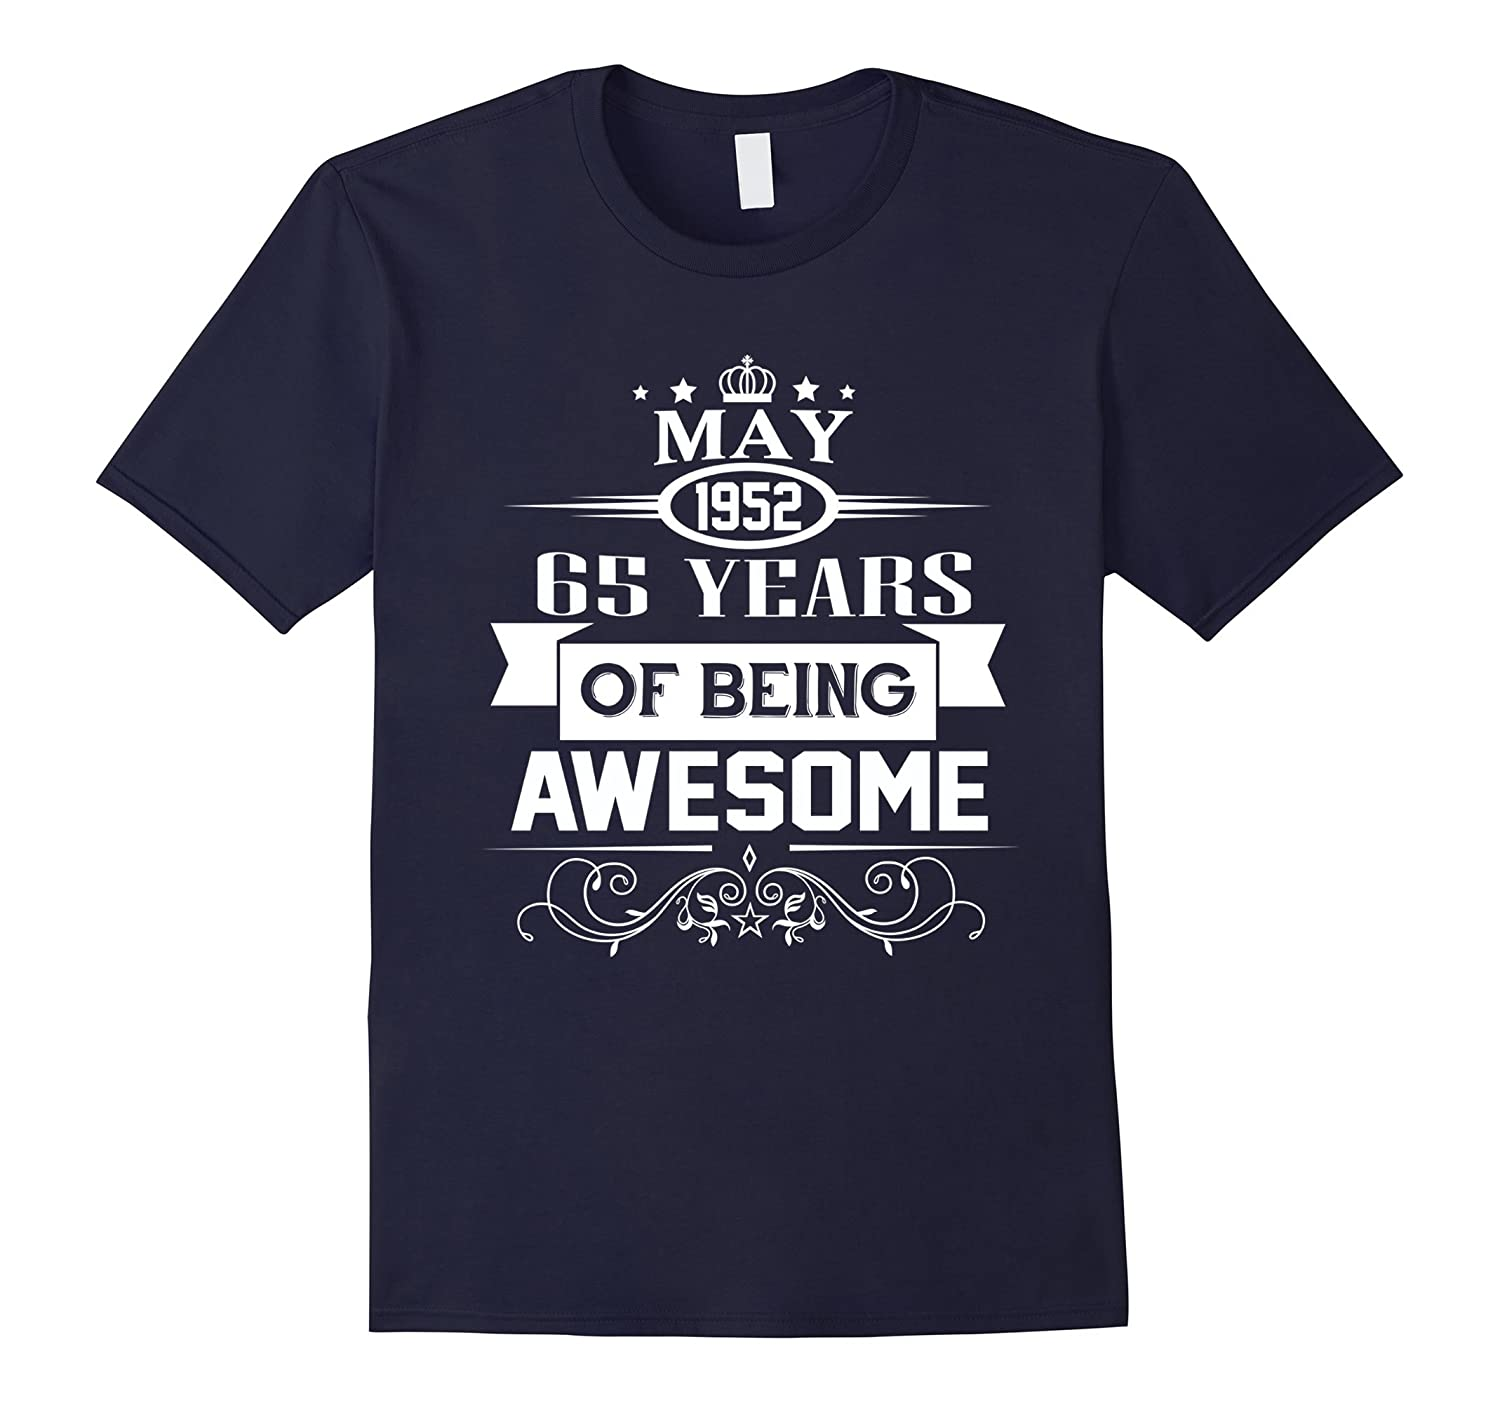 May 1952 65 years of being awesome T-Shirt-Vaci